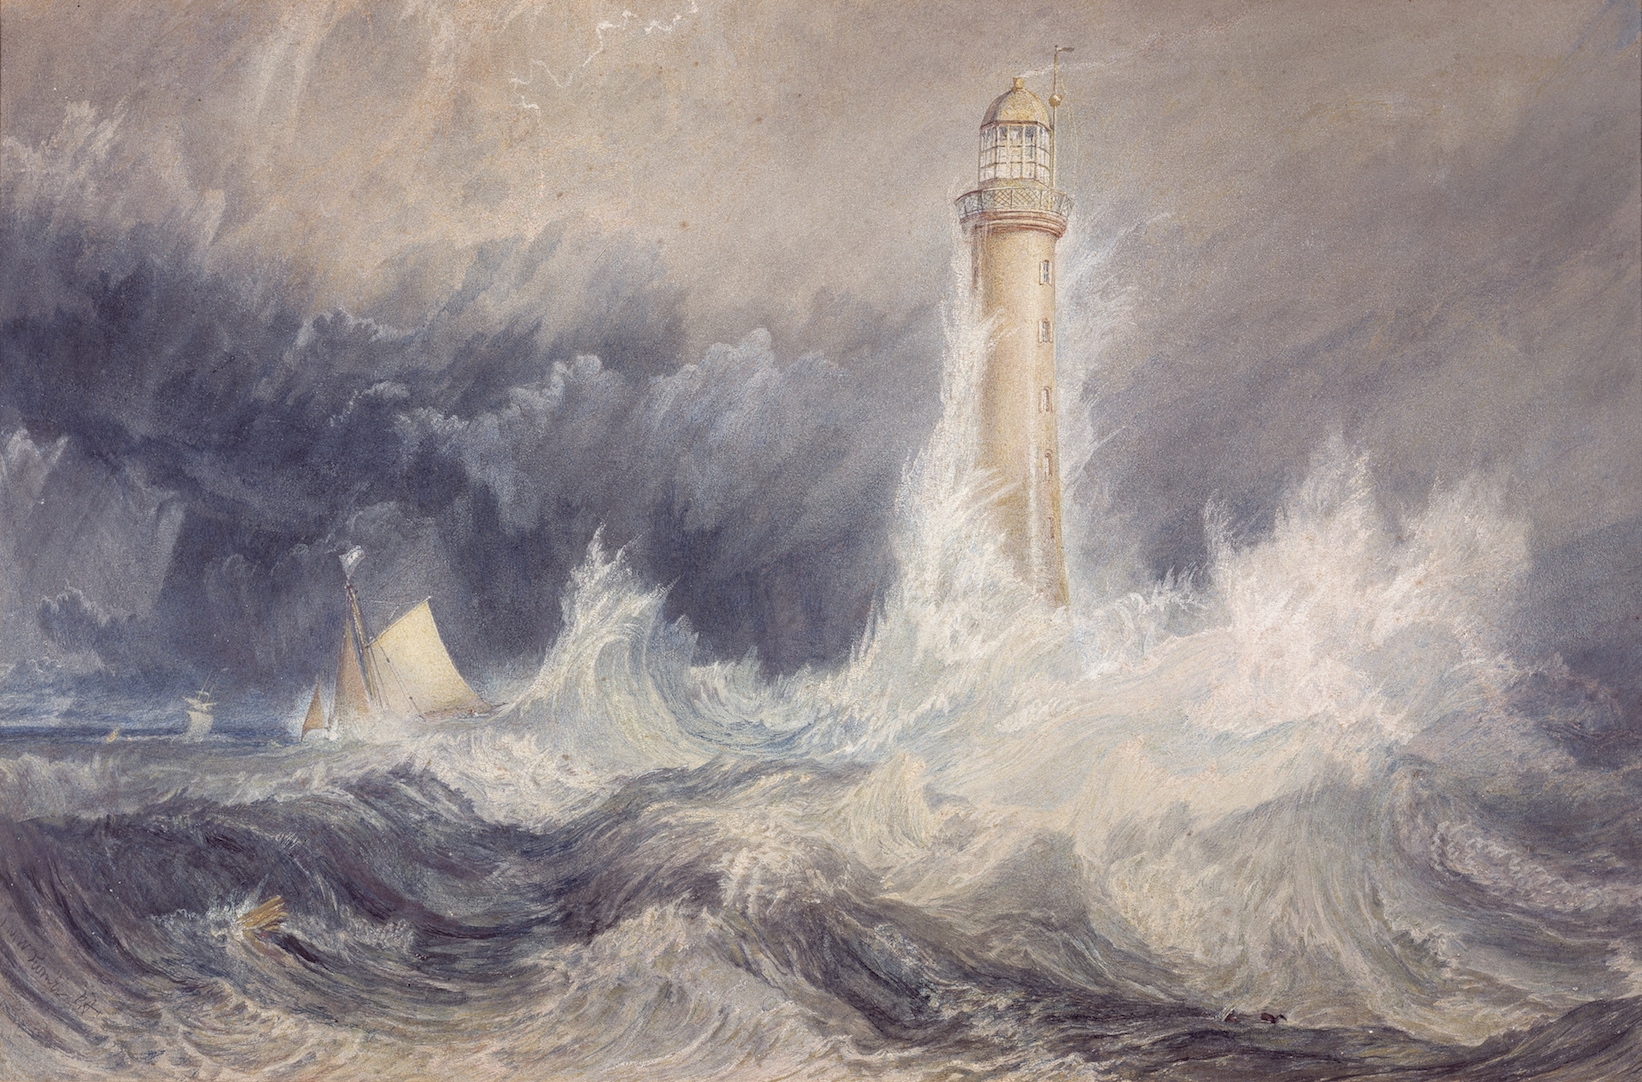 Joseph Mallord William (JMW) Turner The Bell Rock lighthouse 1819 watercolour and gouache with scratching out on paper 30.6 x 45.5 cm Scottish National Gallery, Edinburgh © Trustees of the National Galleries of Scotland ***This image may only be used in conjunction with editorial coverage of The Greats exhibition, 24 Oct 2015 - 14 Feb 2016, at the Art Gallery of New South Wales. This image may not be cropped or overwritten. Prior approval in writing required for use as a cover. Caption details must accompany reproduction of the image. *** Media contact: Lisa.Catt@ag.nsw.gov.au